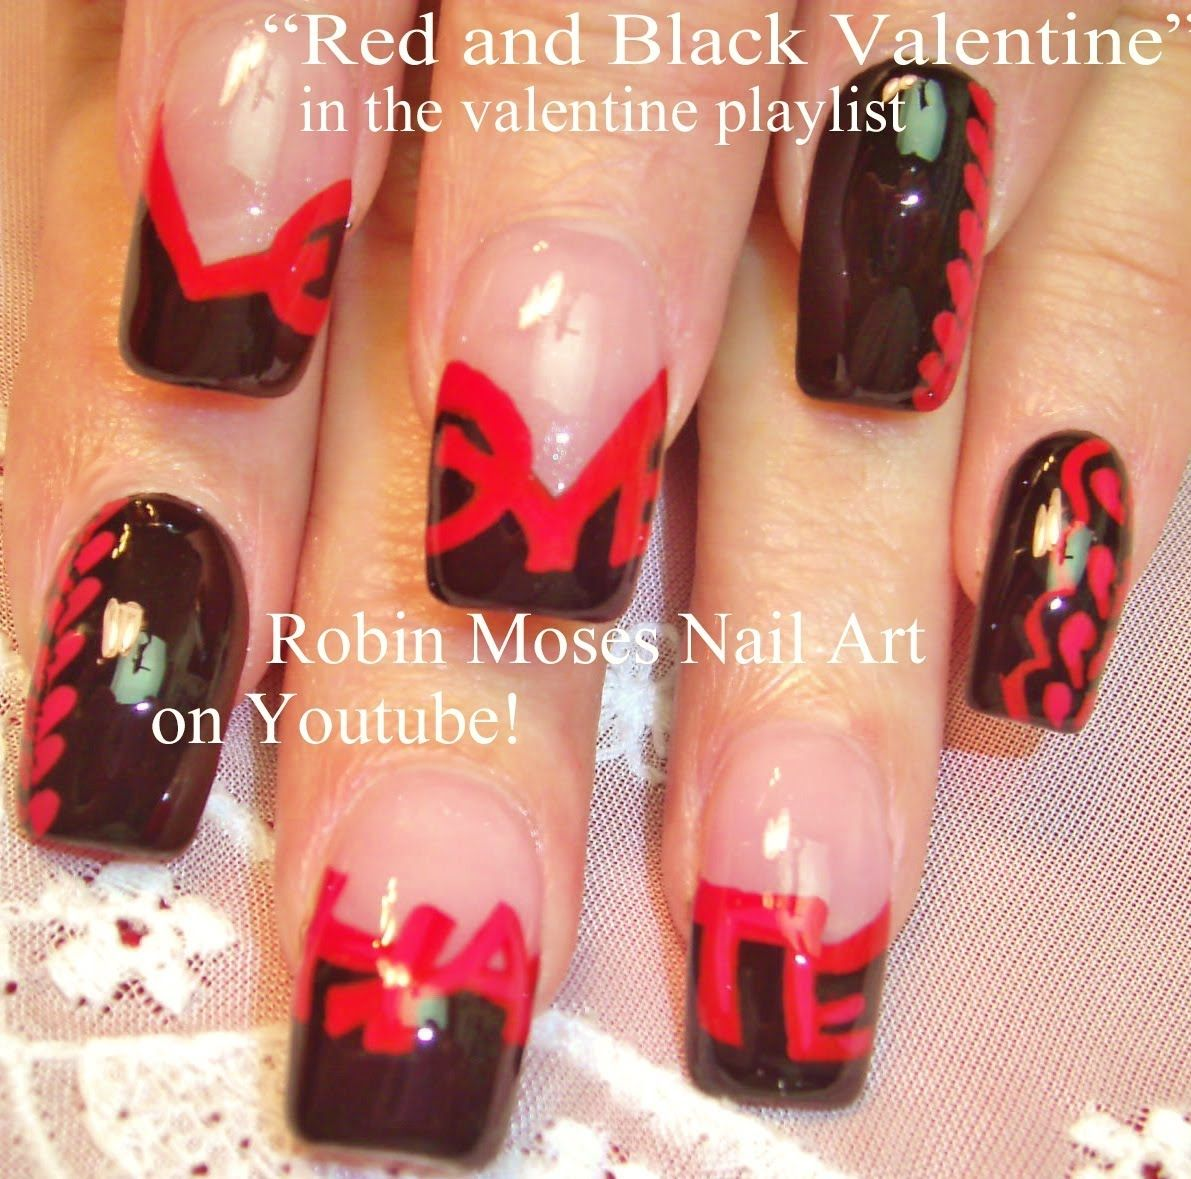 Valentine's Day Nail Art inspired by Christian Louboutin! xoxo